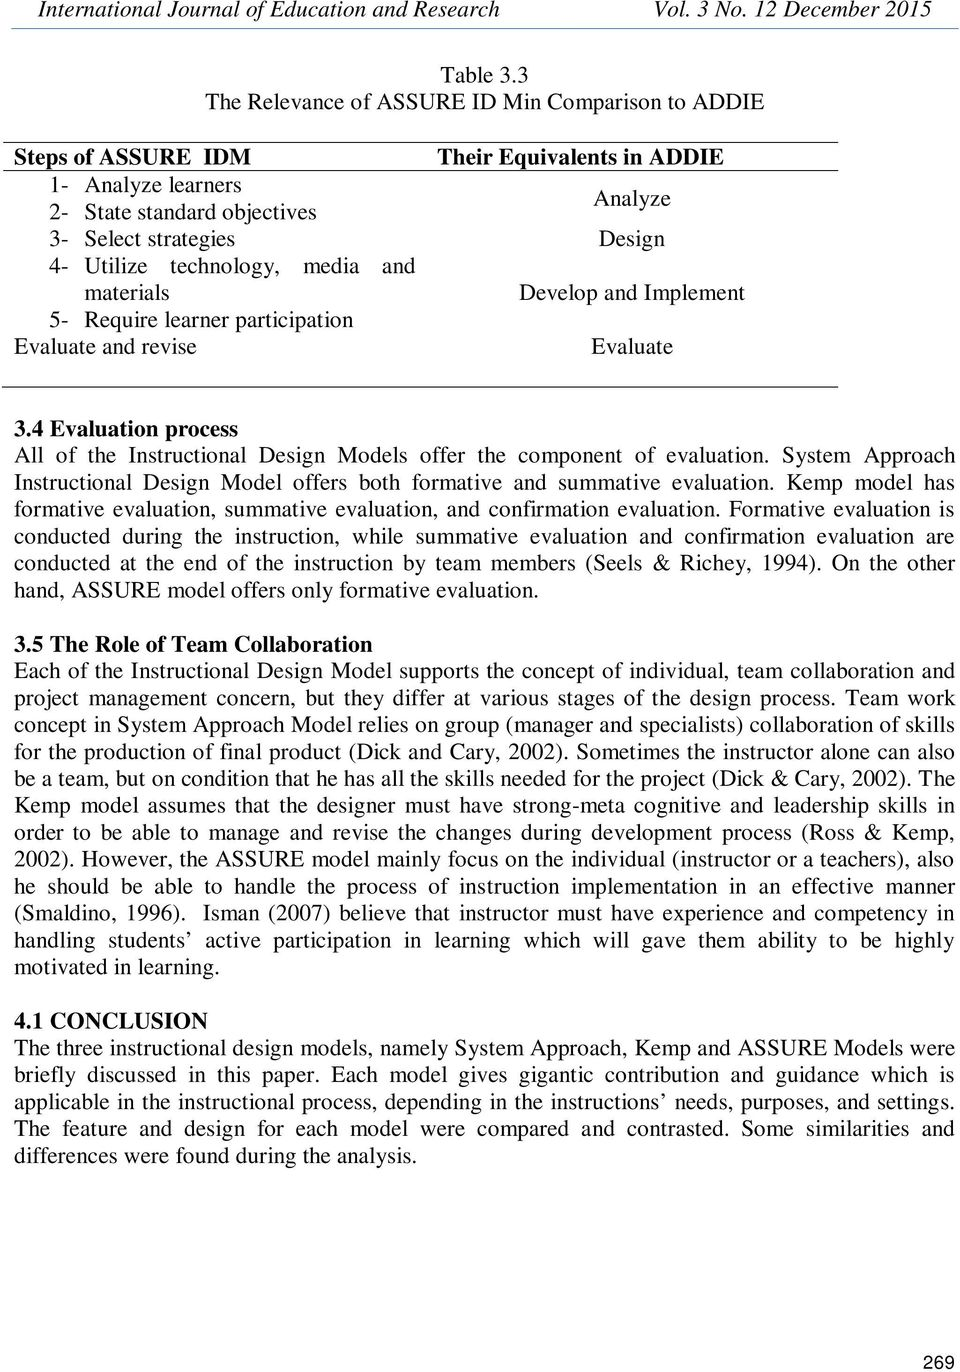 Comparative Analysis Between System Approach Kemp And Assure Instructional Design Models Pdf Free Download